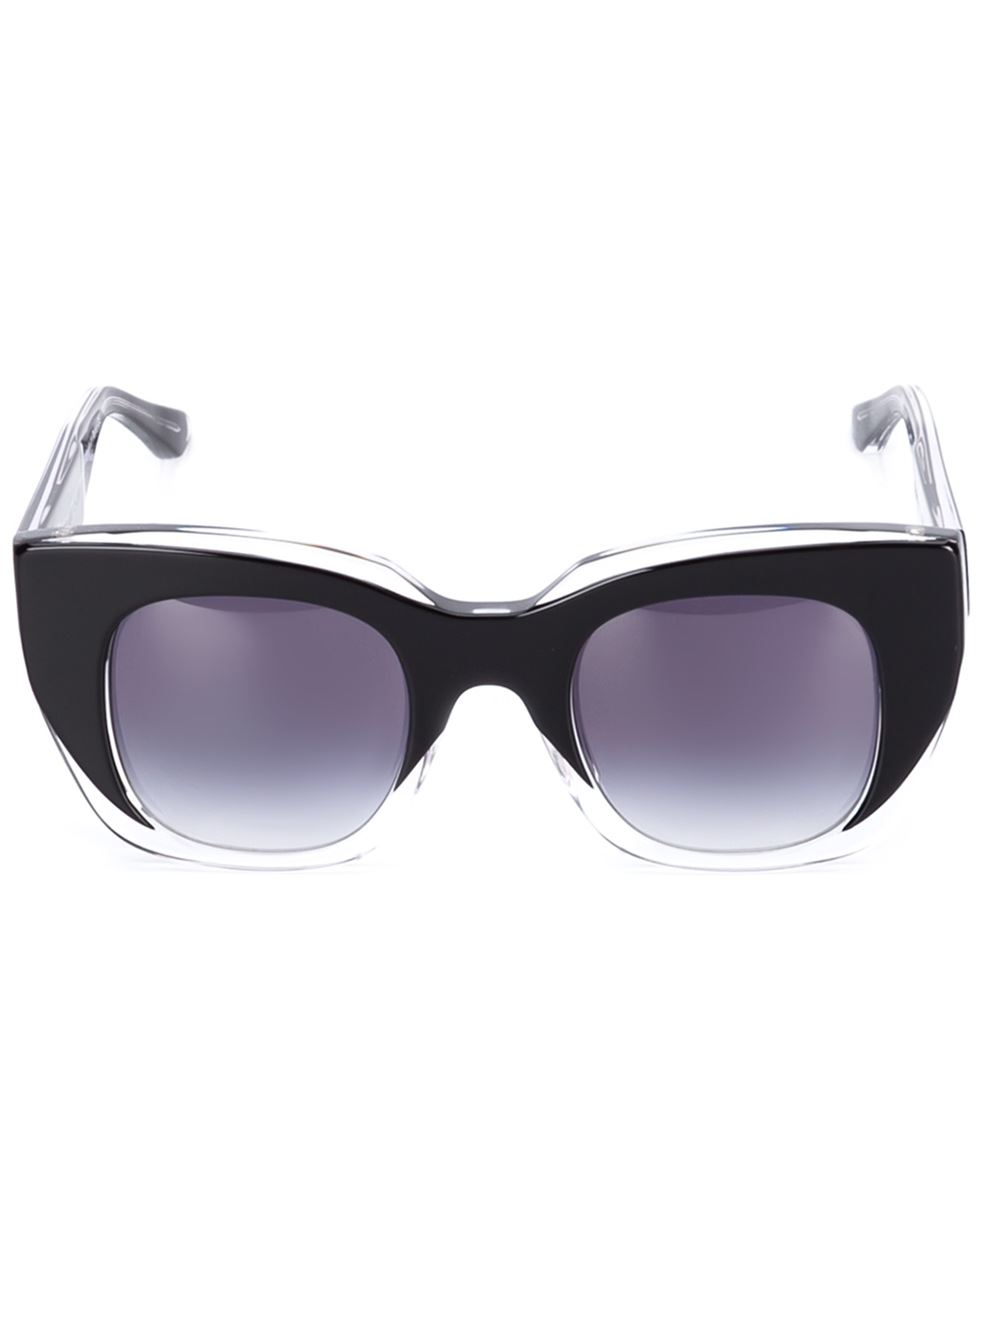 Thierry lasry 'intimacy' Sunglasses in Black